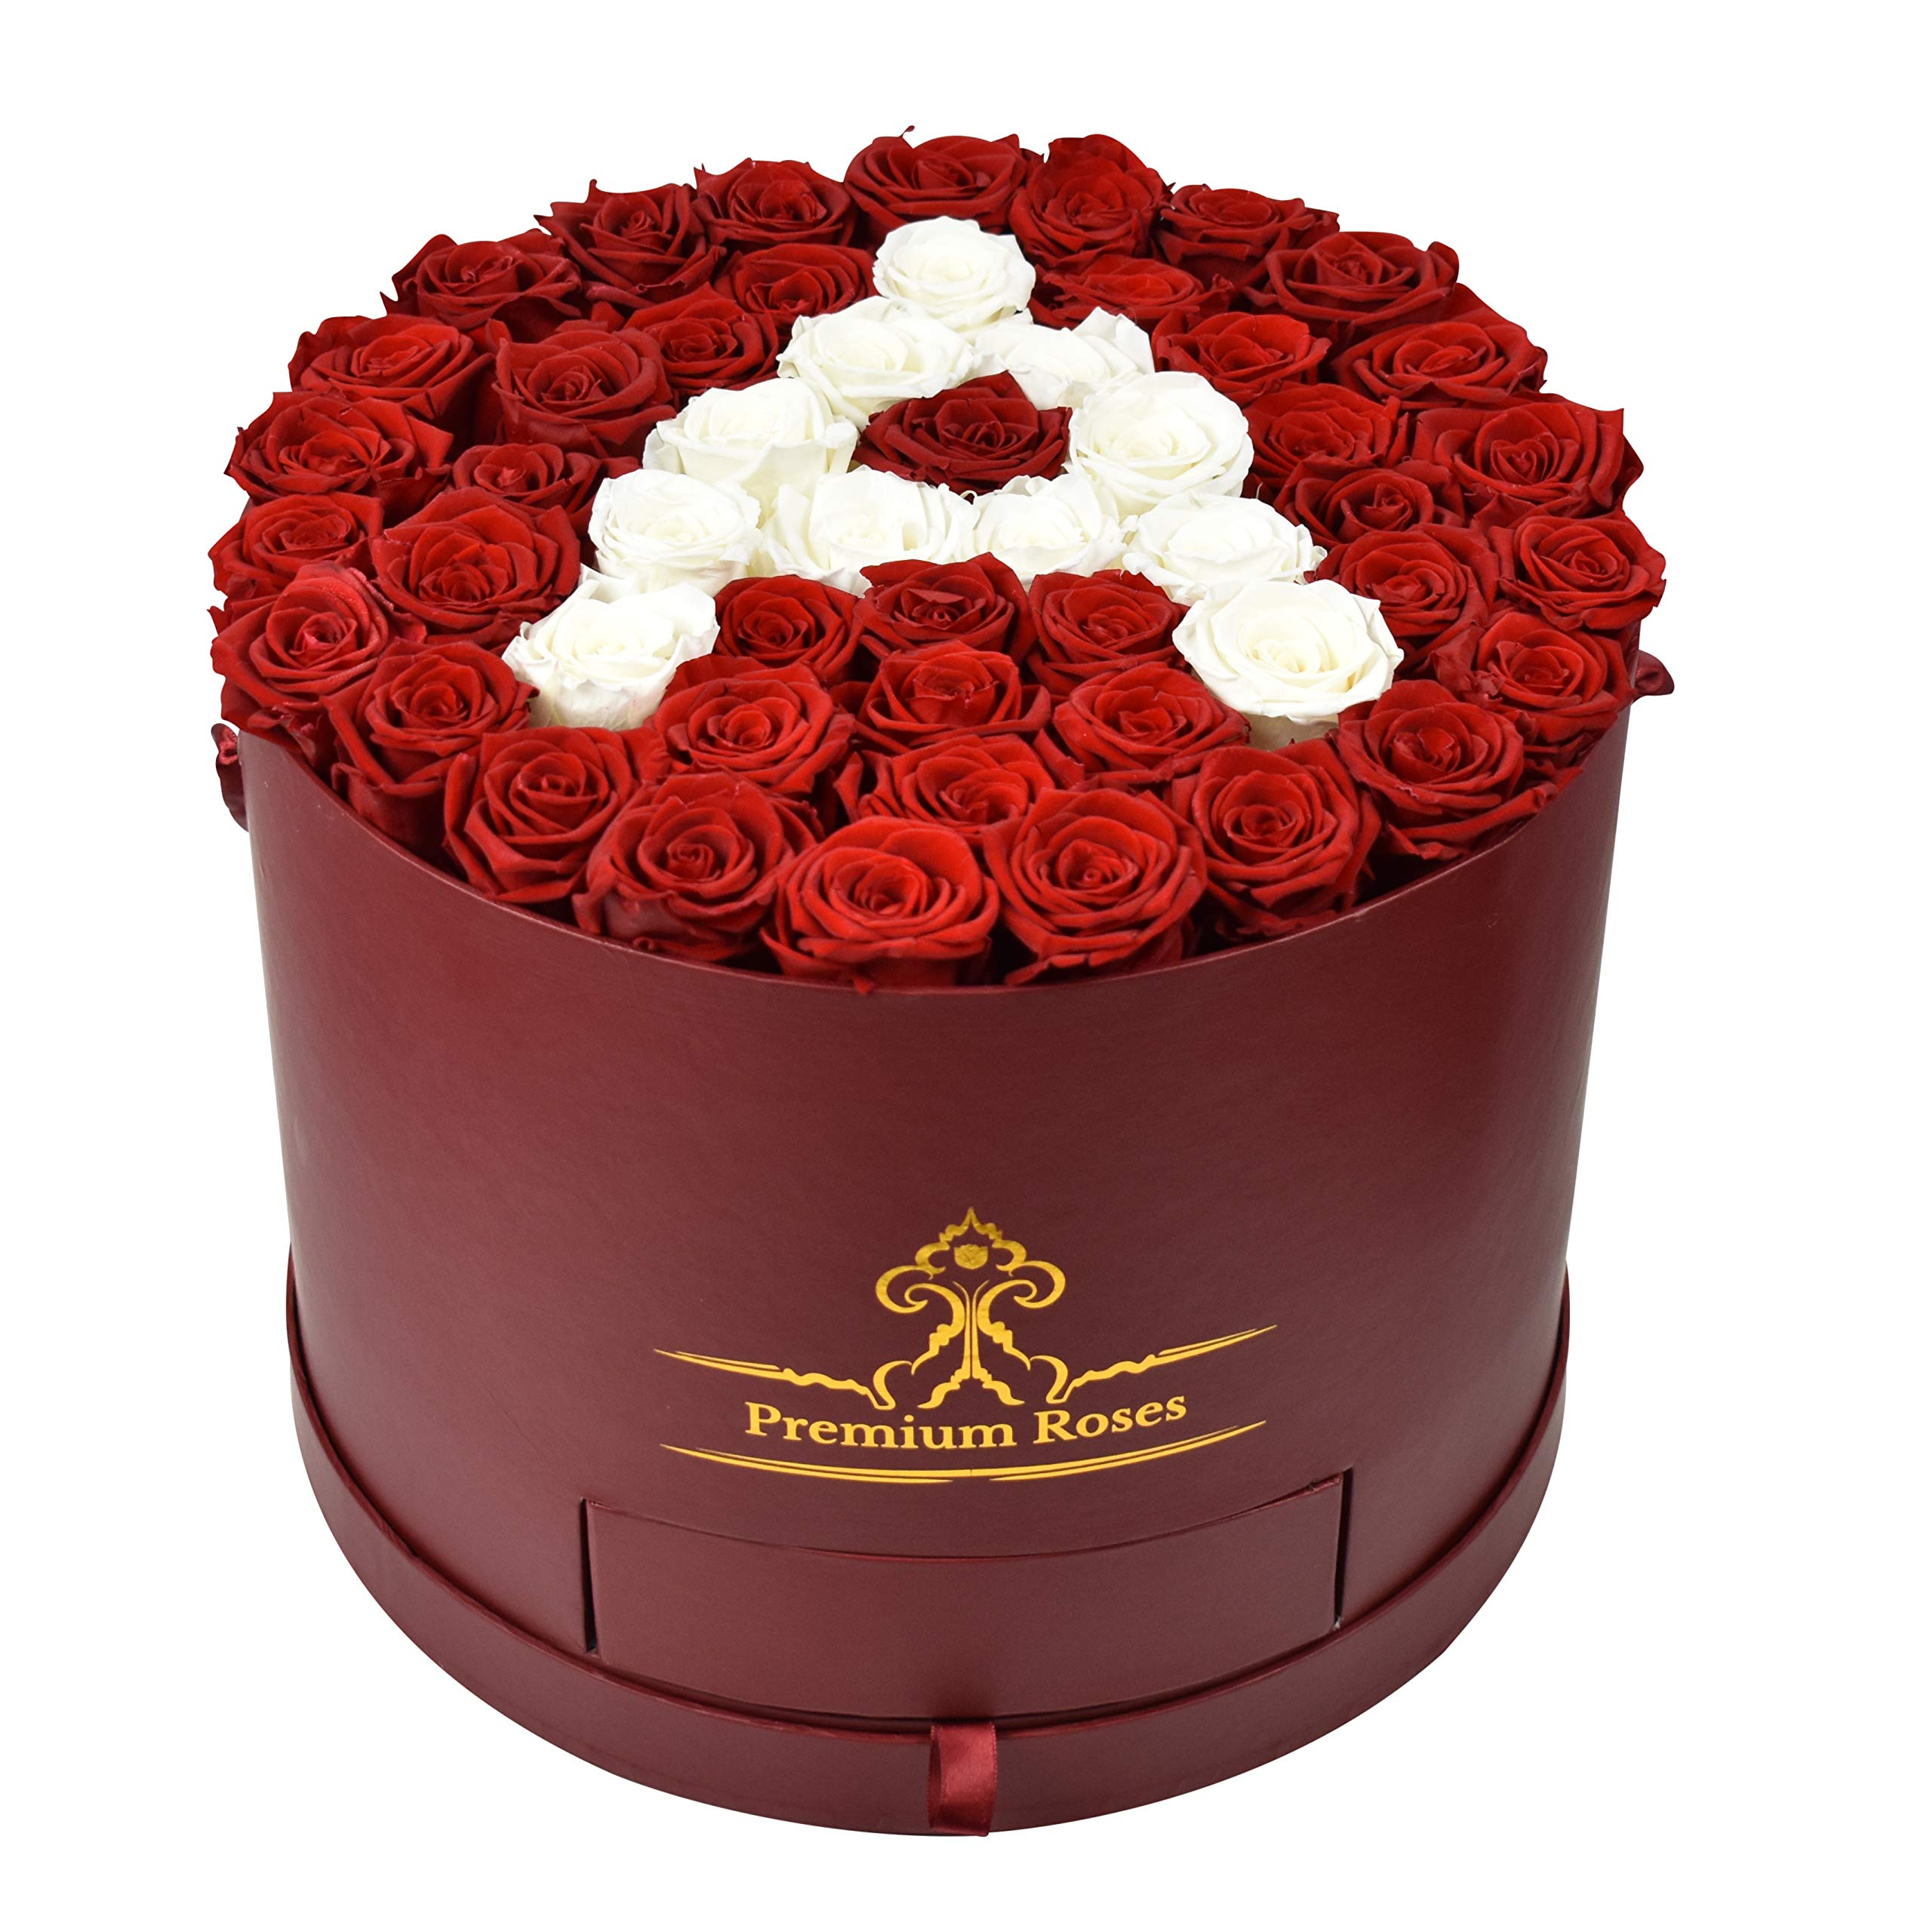 Premium Roses| Real Roses That Last a Year | Fresh Flowers| Roses in a Box (Custom Box, Large) by Premium Roses